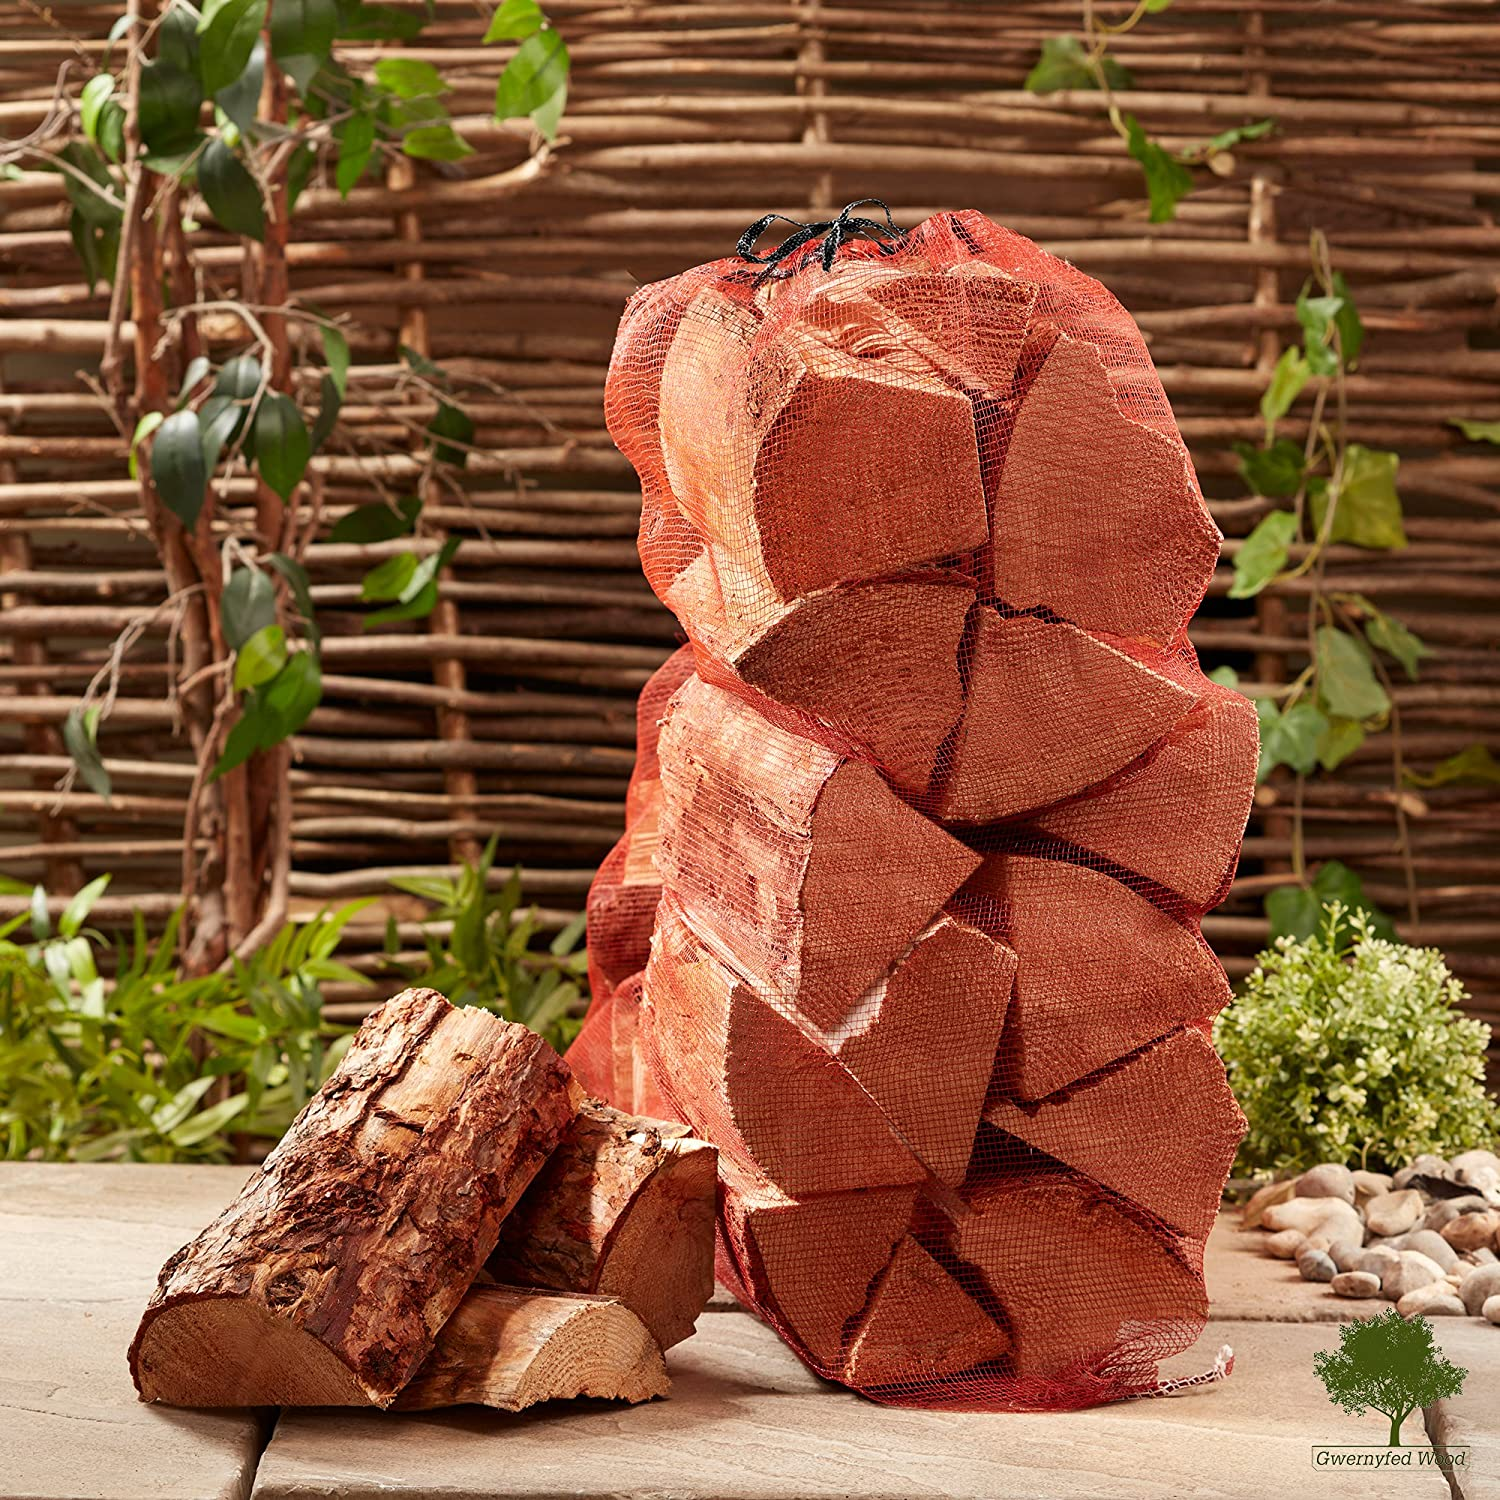 Soft Wood for Wood Burners Stoves Jumbo 60 Litre Net Fast Delivery 50/% More Logs Than Hardwood for Same Price Log Burners Softwood Firewood Logs 15kg Net of Kiln Dried Chunky Logs 25cm Long